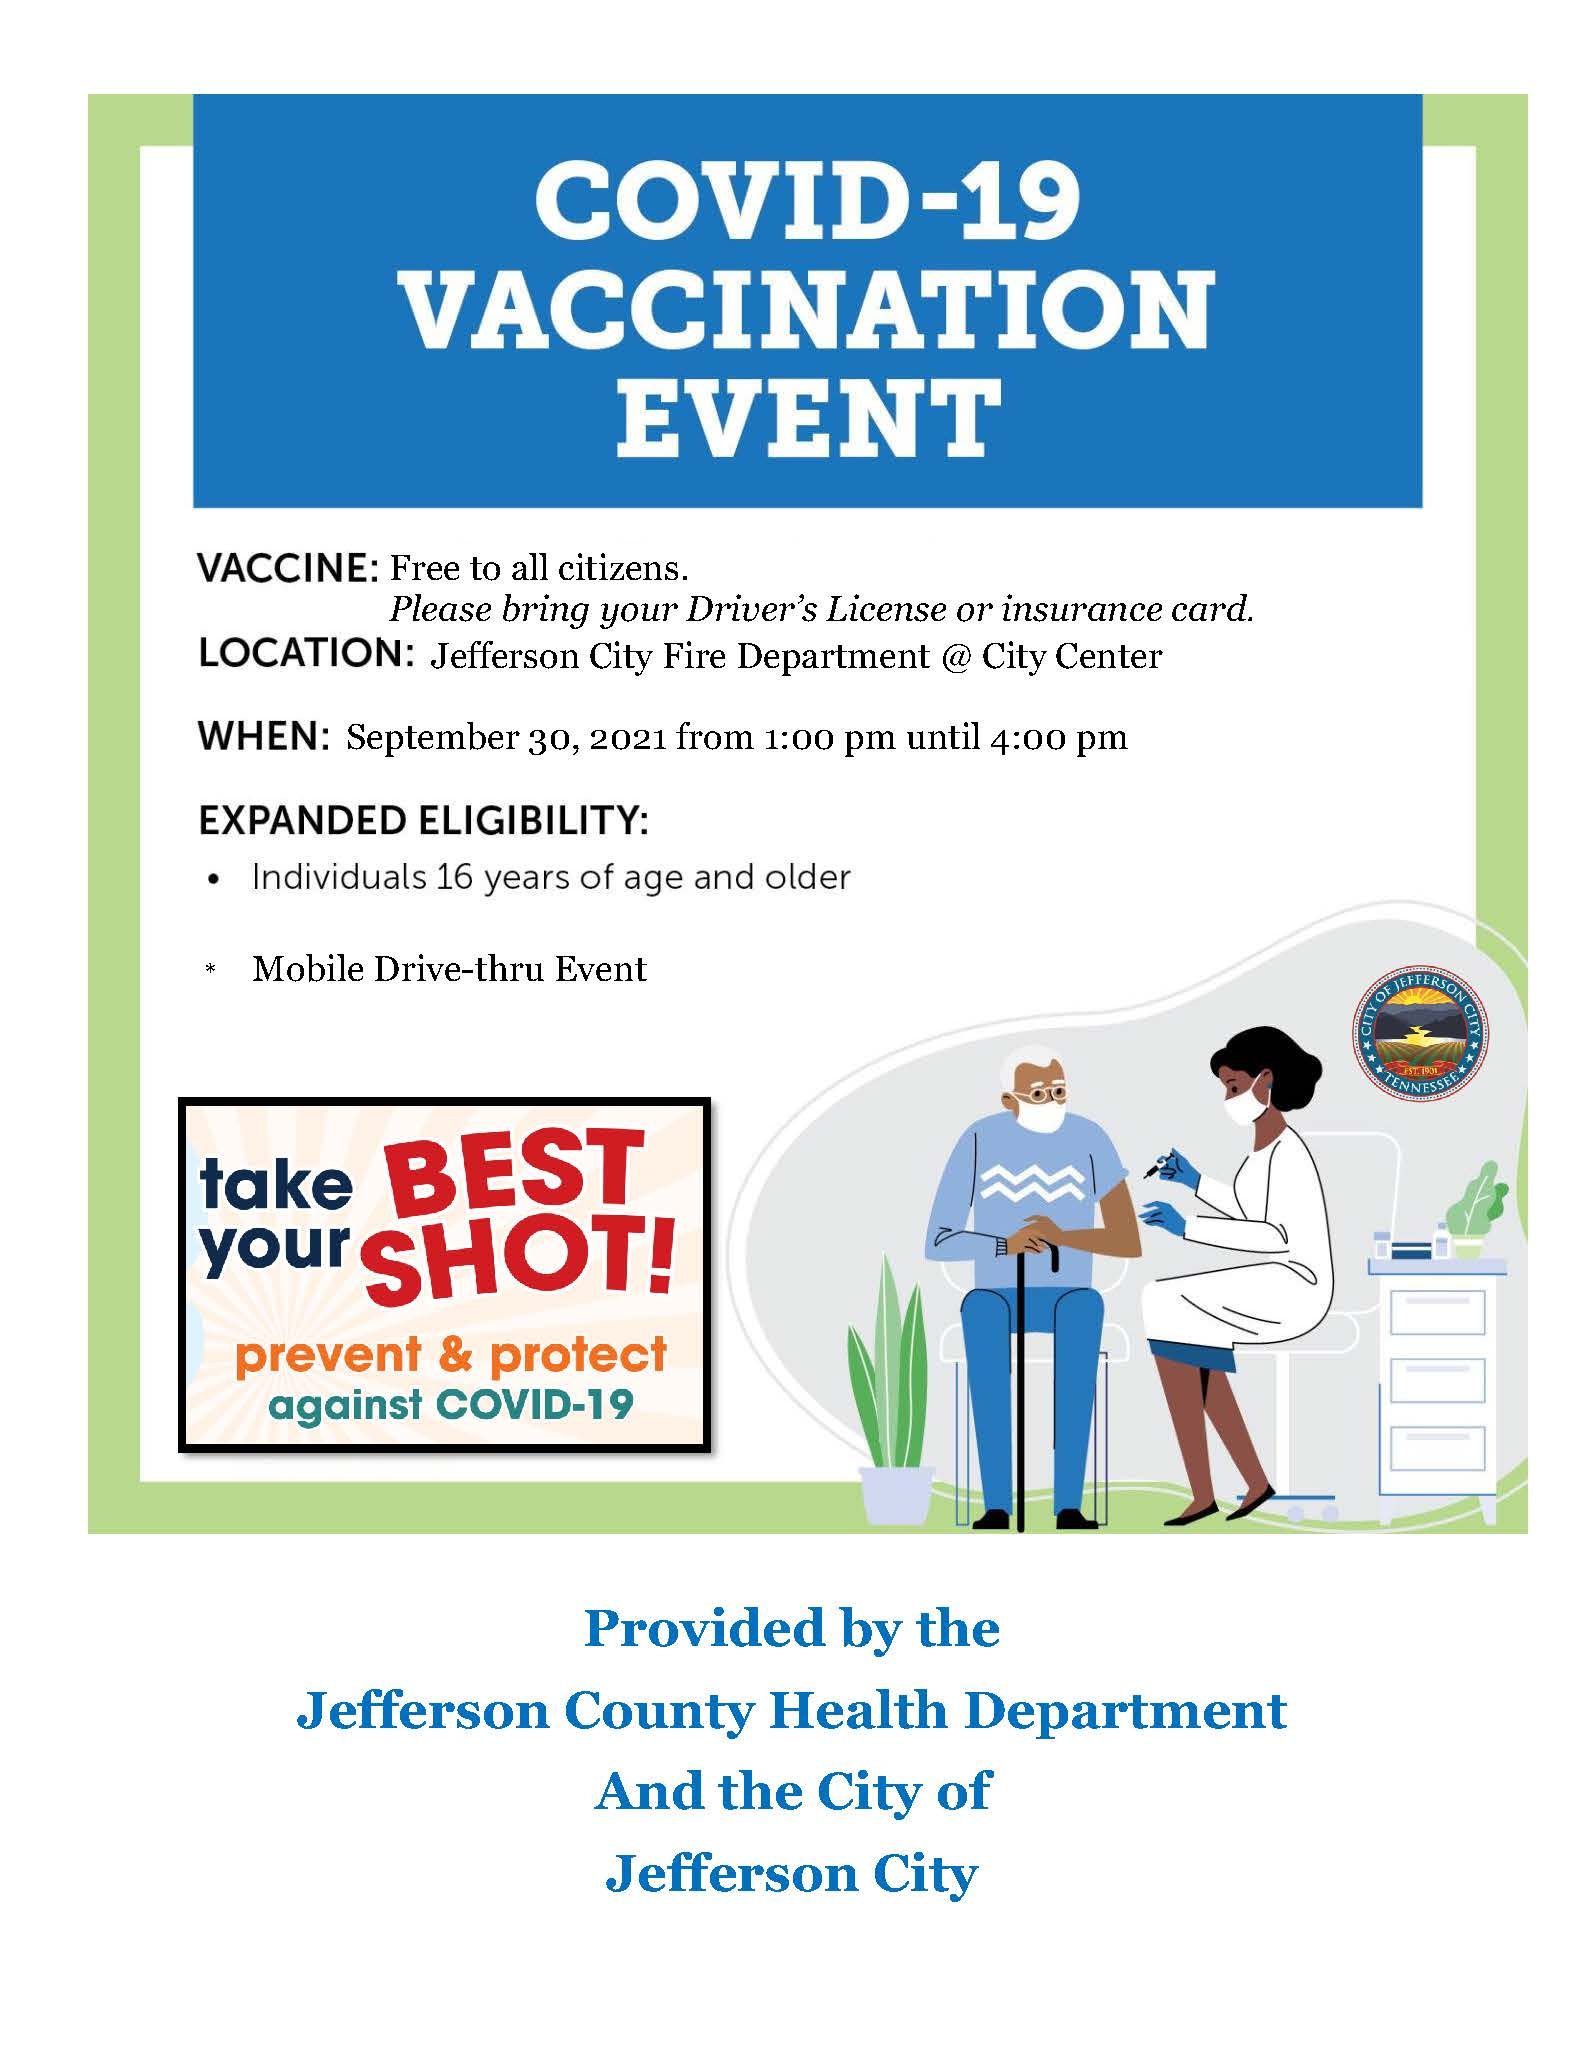 a flyer for the covid vaccination event happening in jefferson city tn